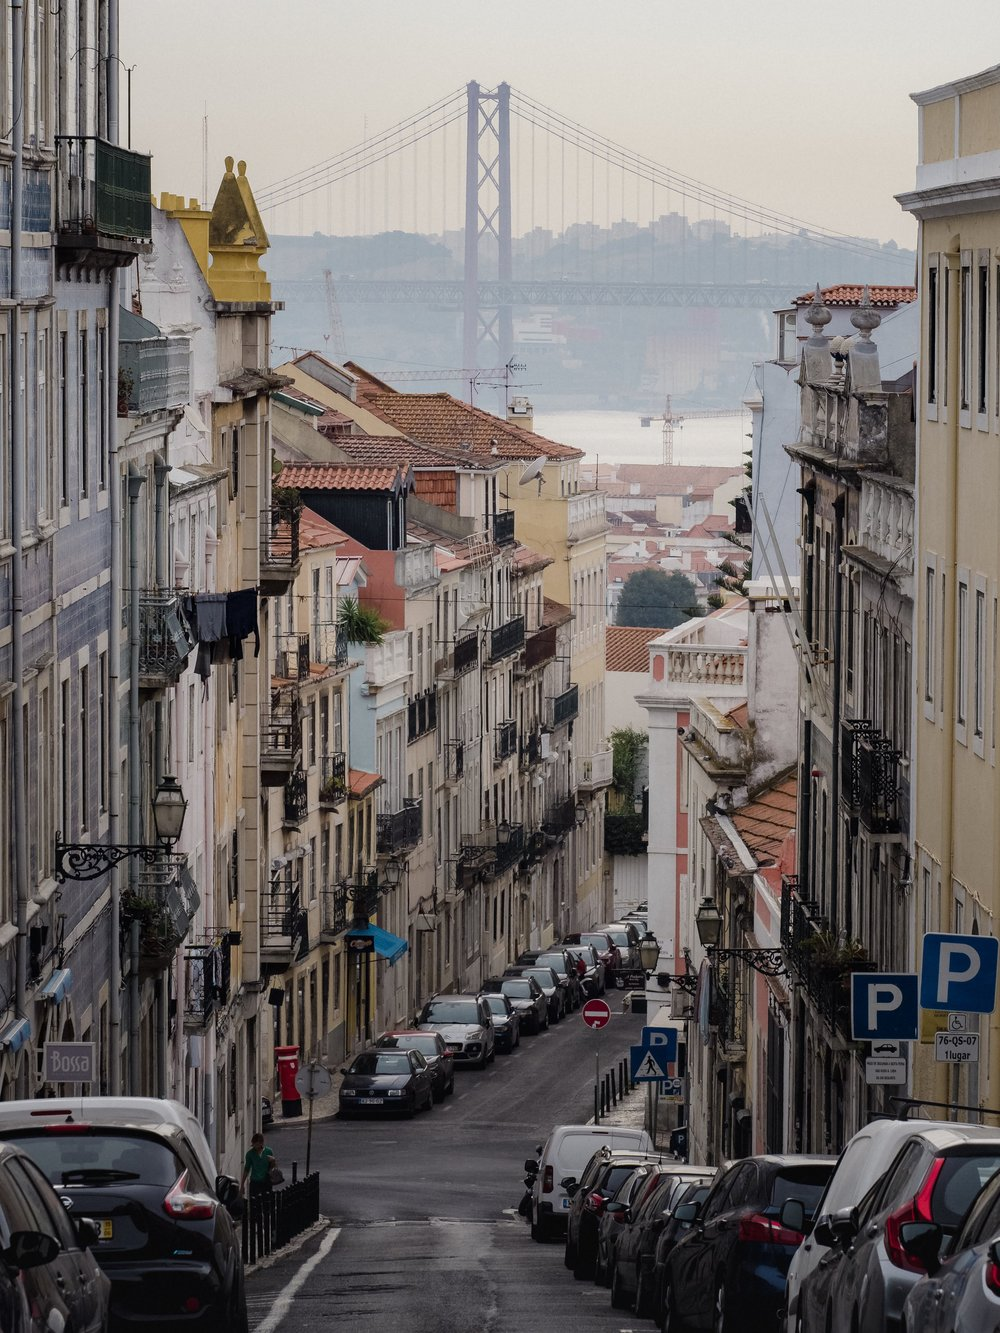 Seen in the distance here, the Ponte 25 de Abril, connects Lisbon to Almada.